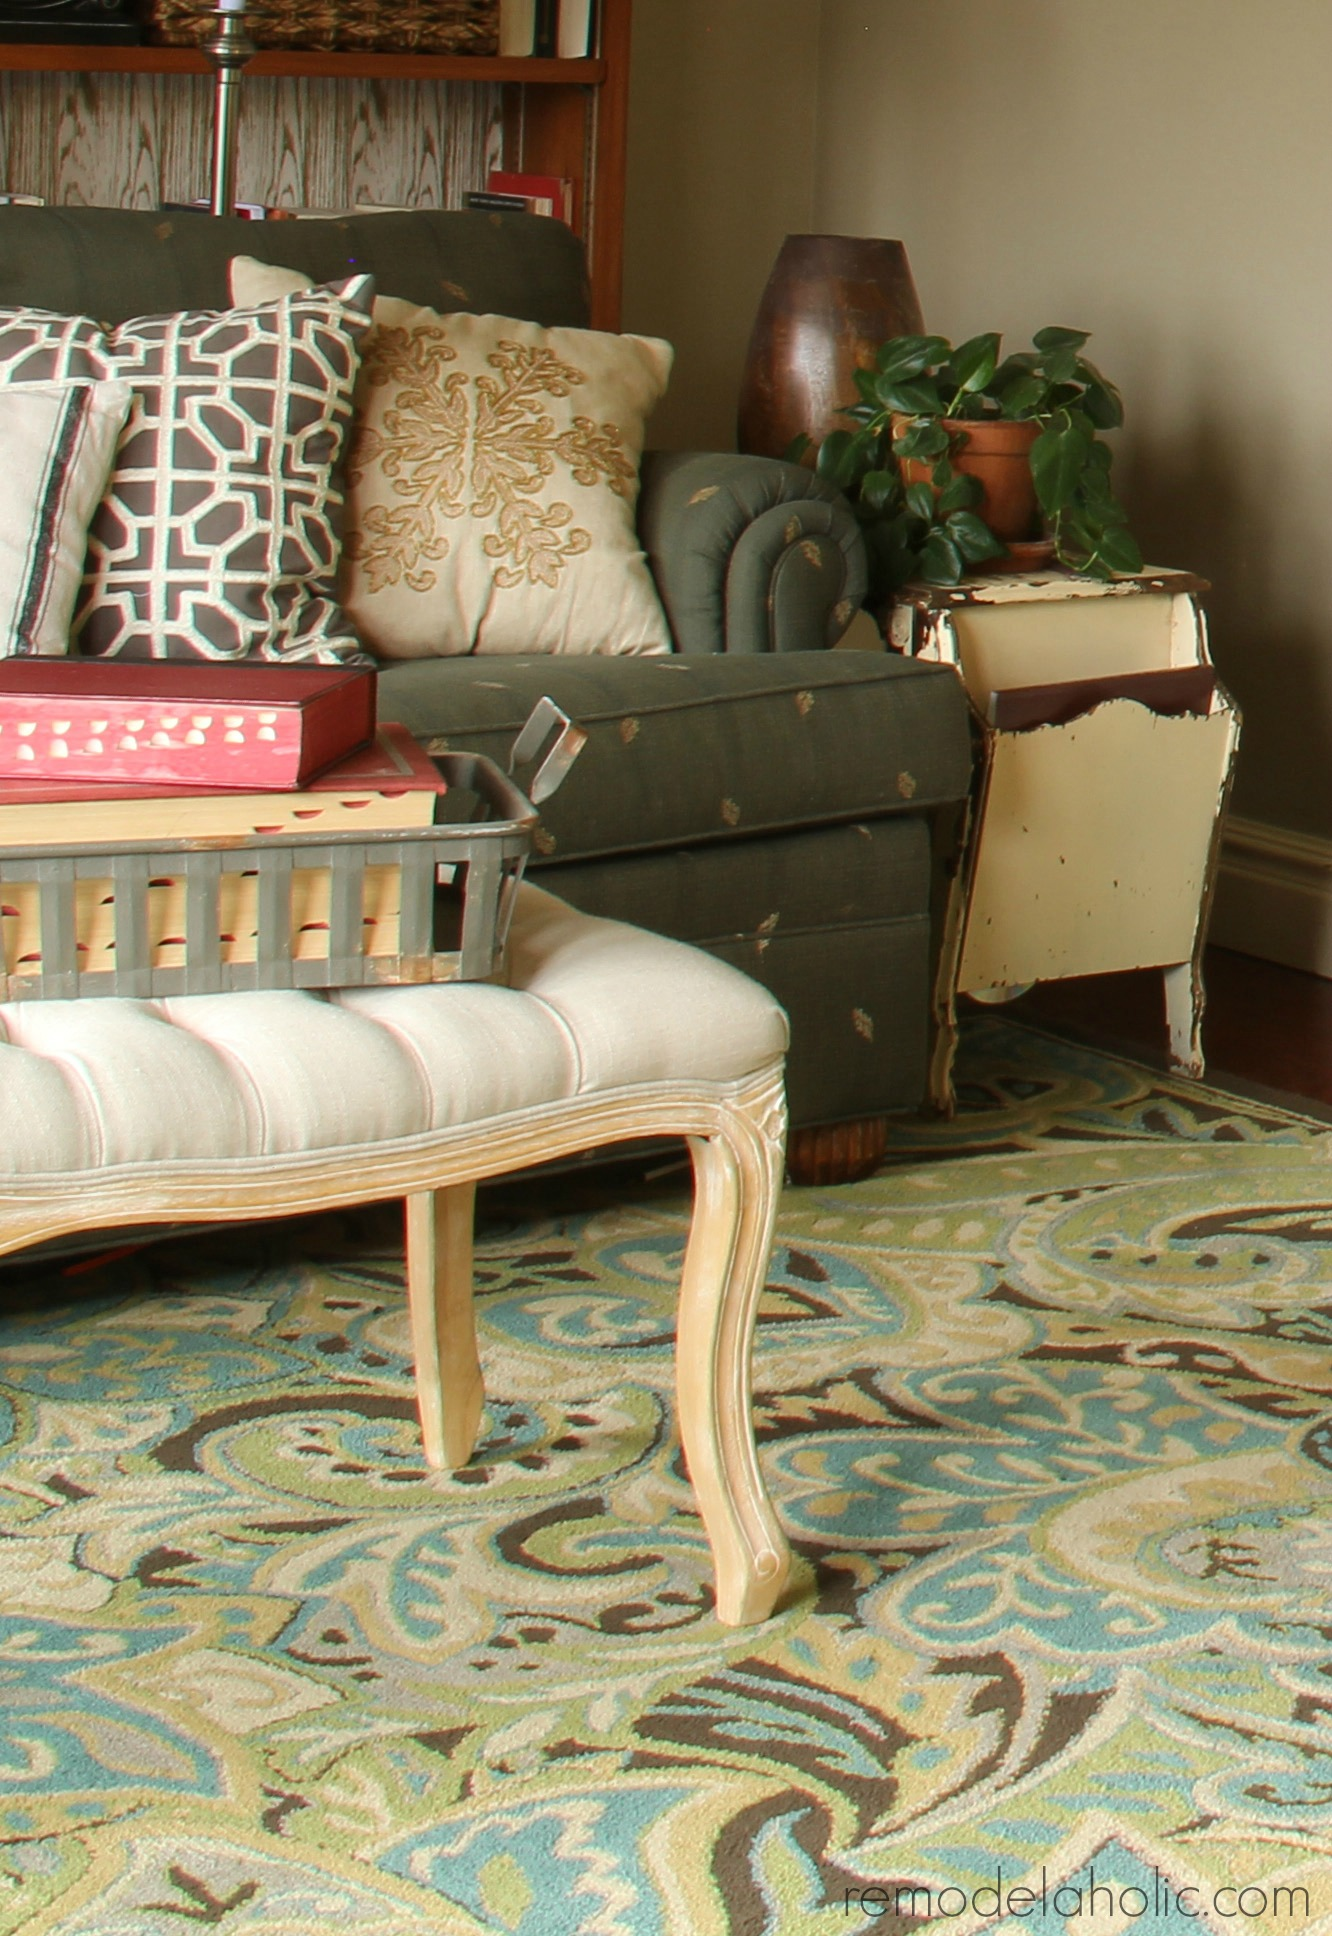 that beautiful paisley style green teal blue area rug is from the hgtv